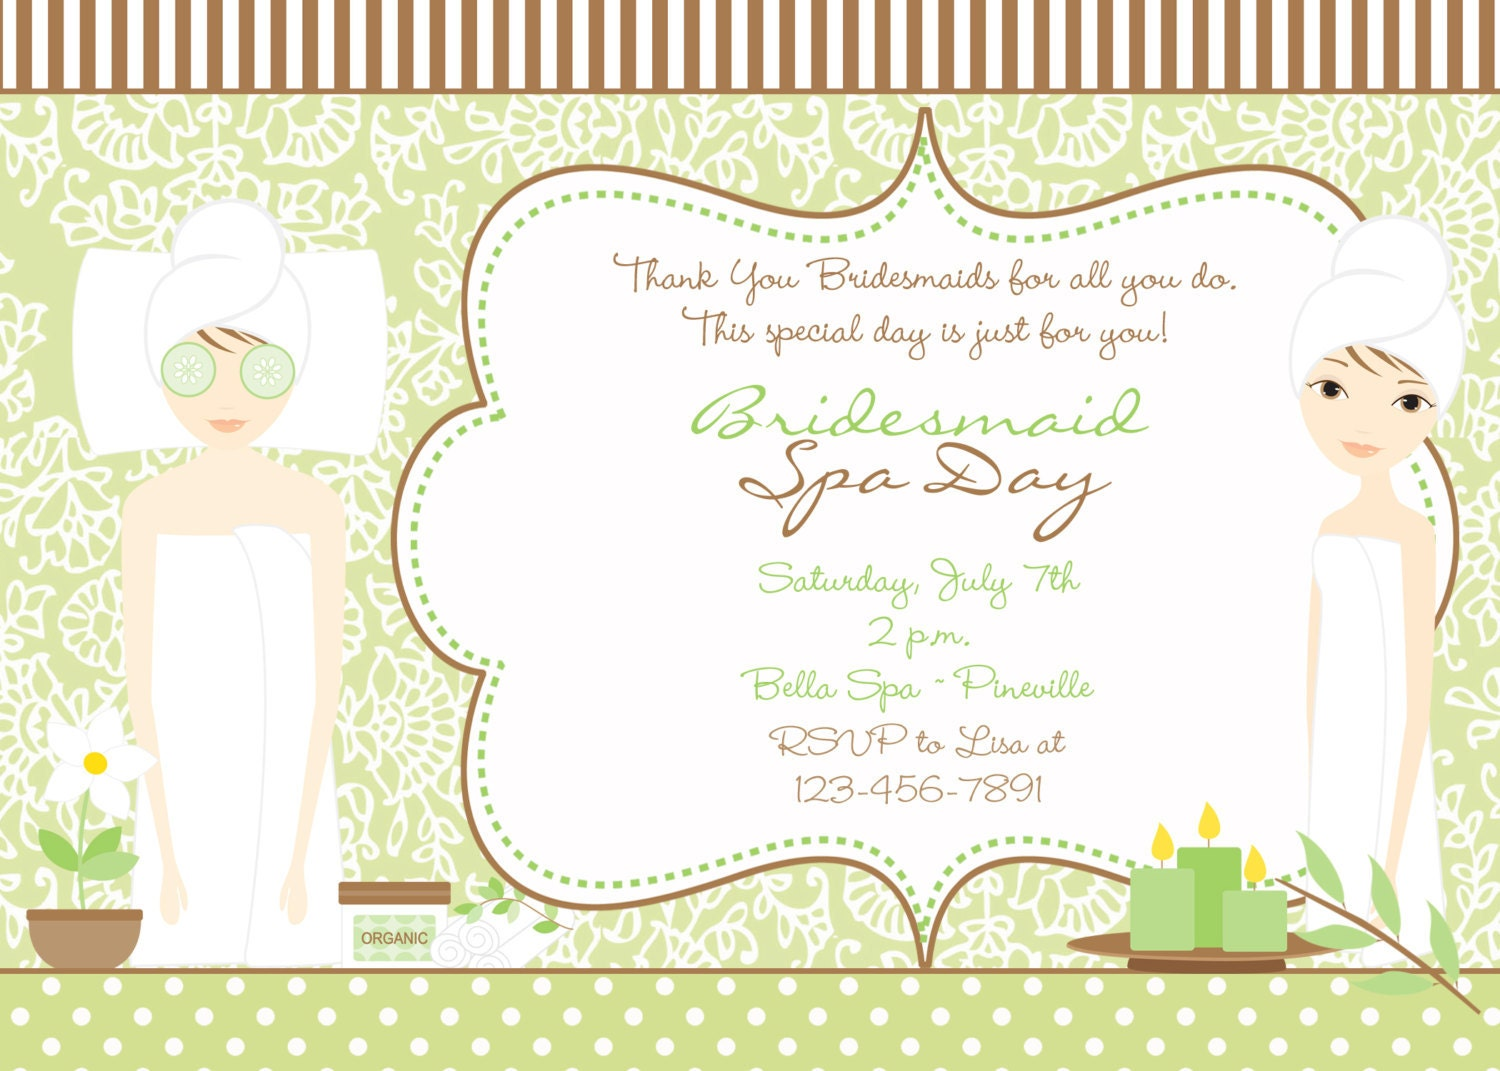 Spa Bridal Shower Invitation green and brown bridal spa day